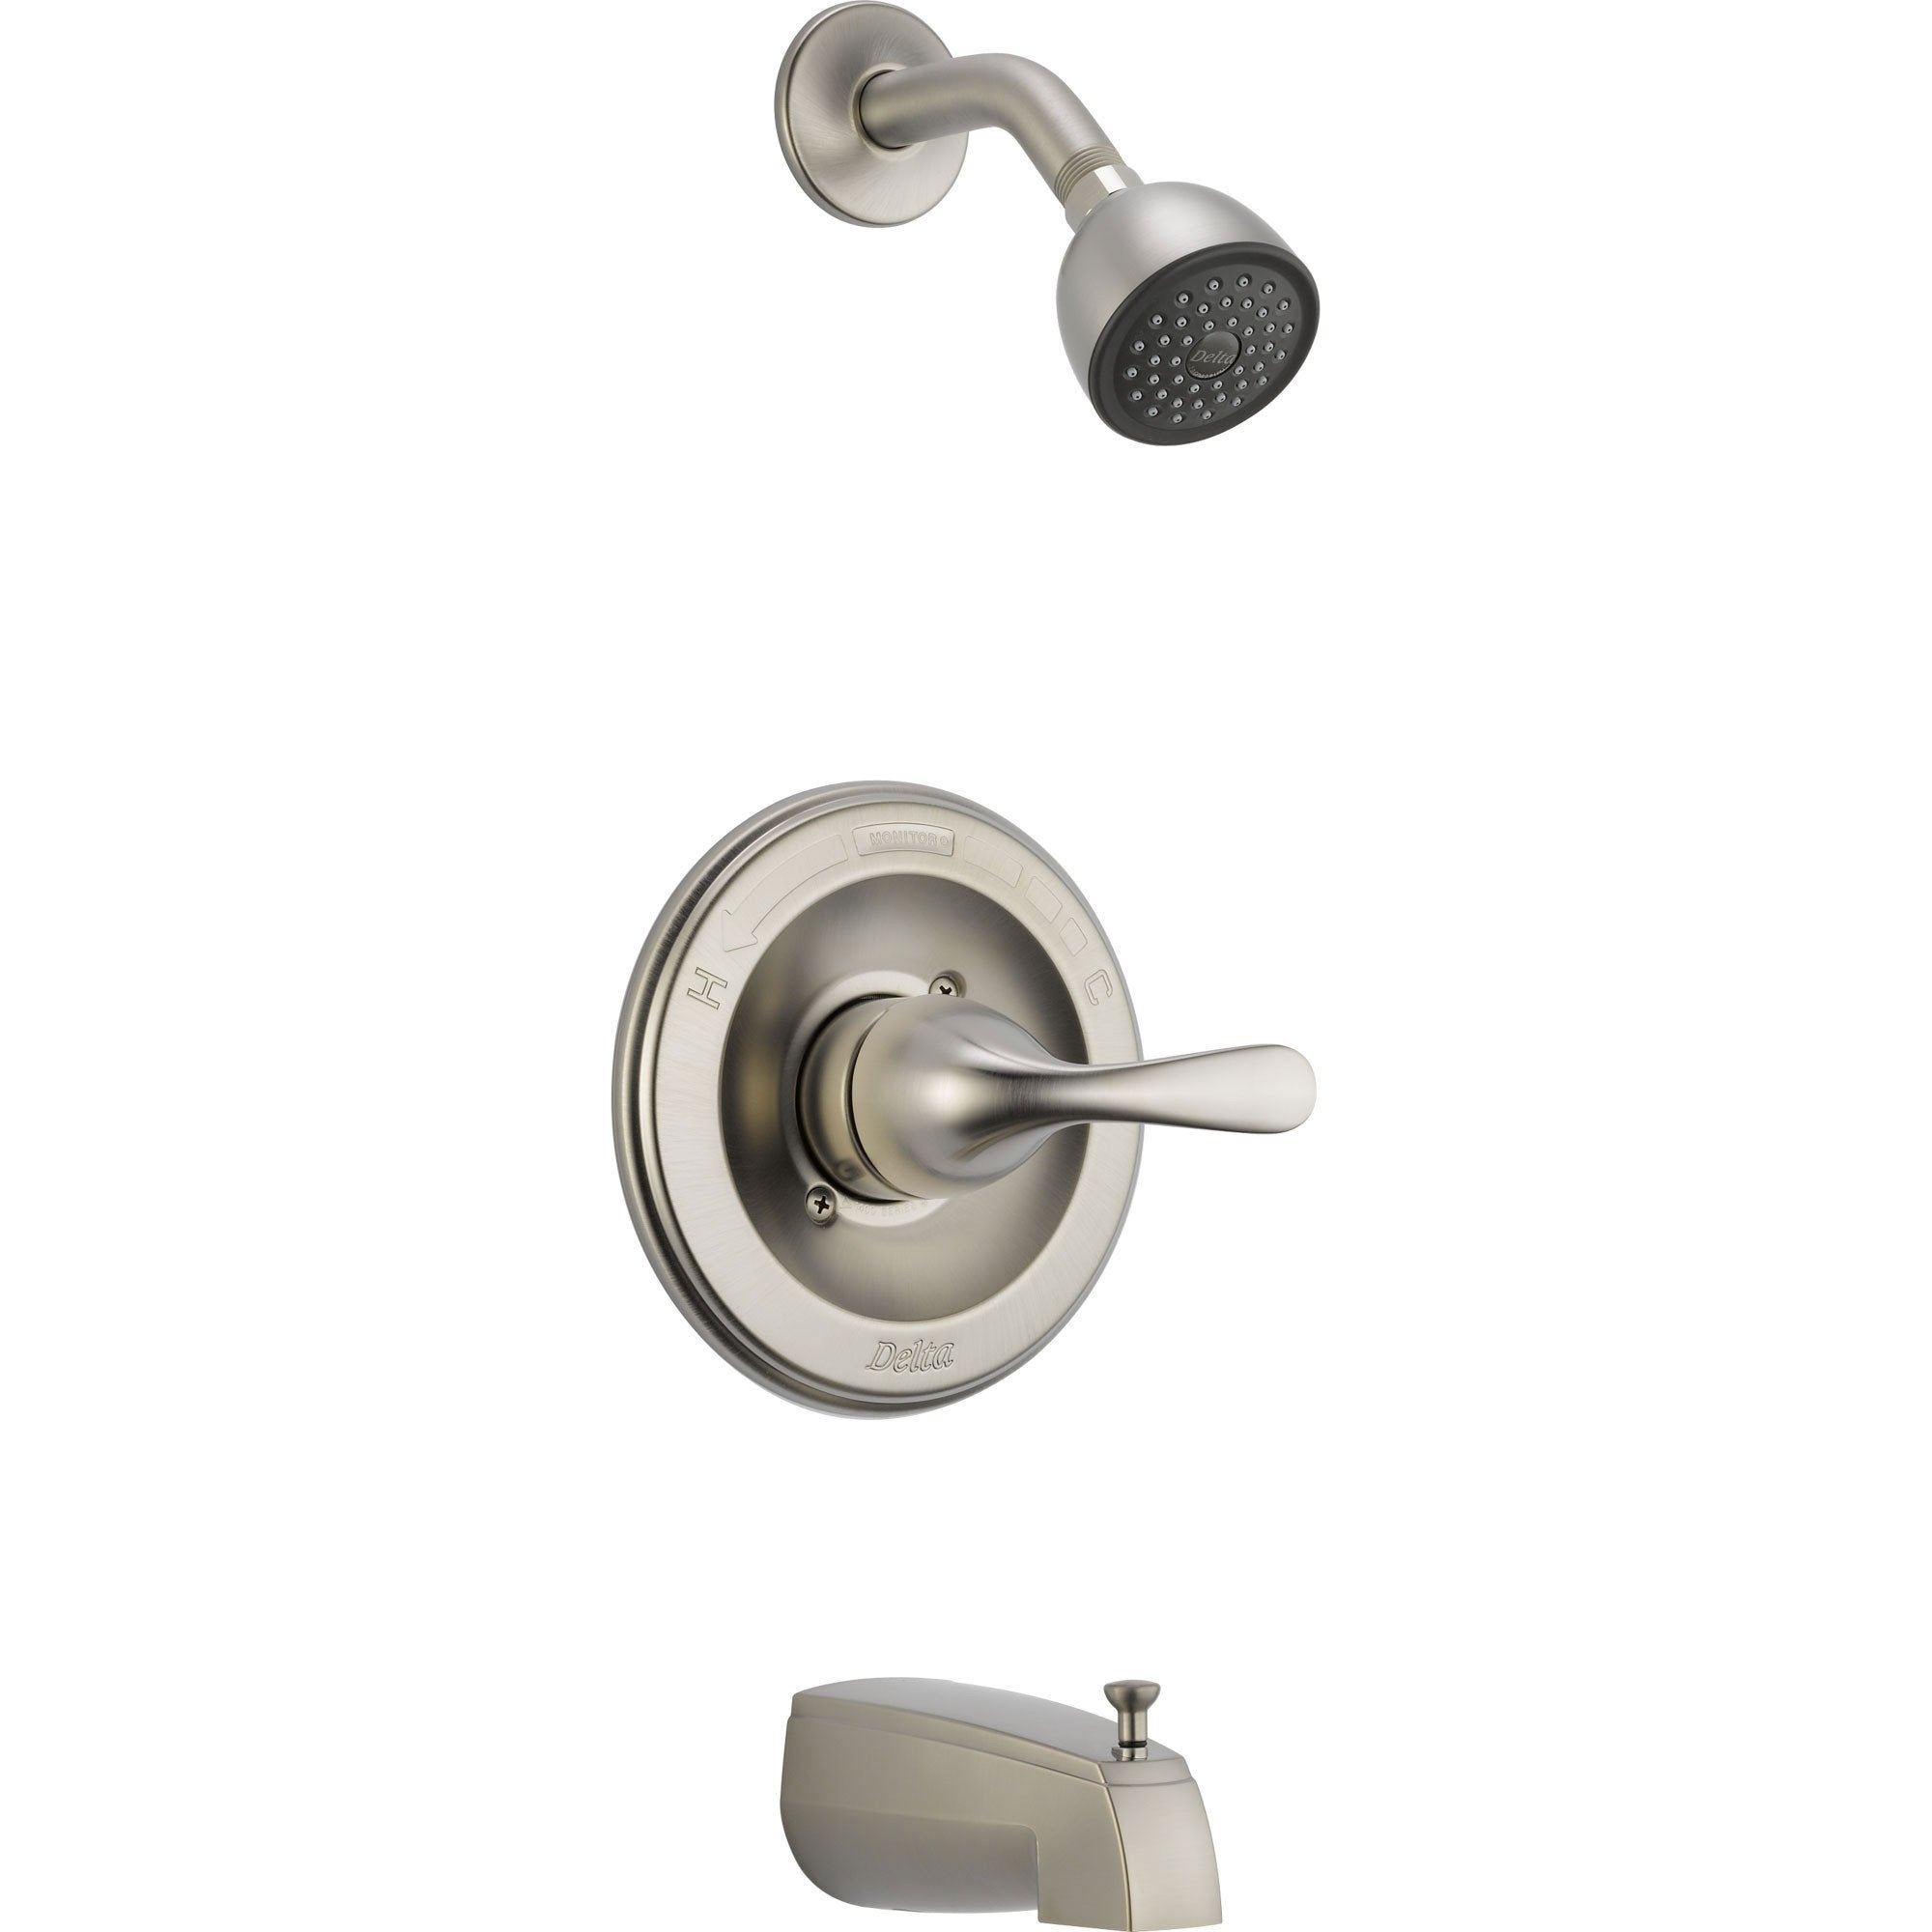 Delta Stainless Steel Finish Tub and Shower Combination Faucet with Valve D350V